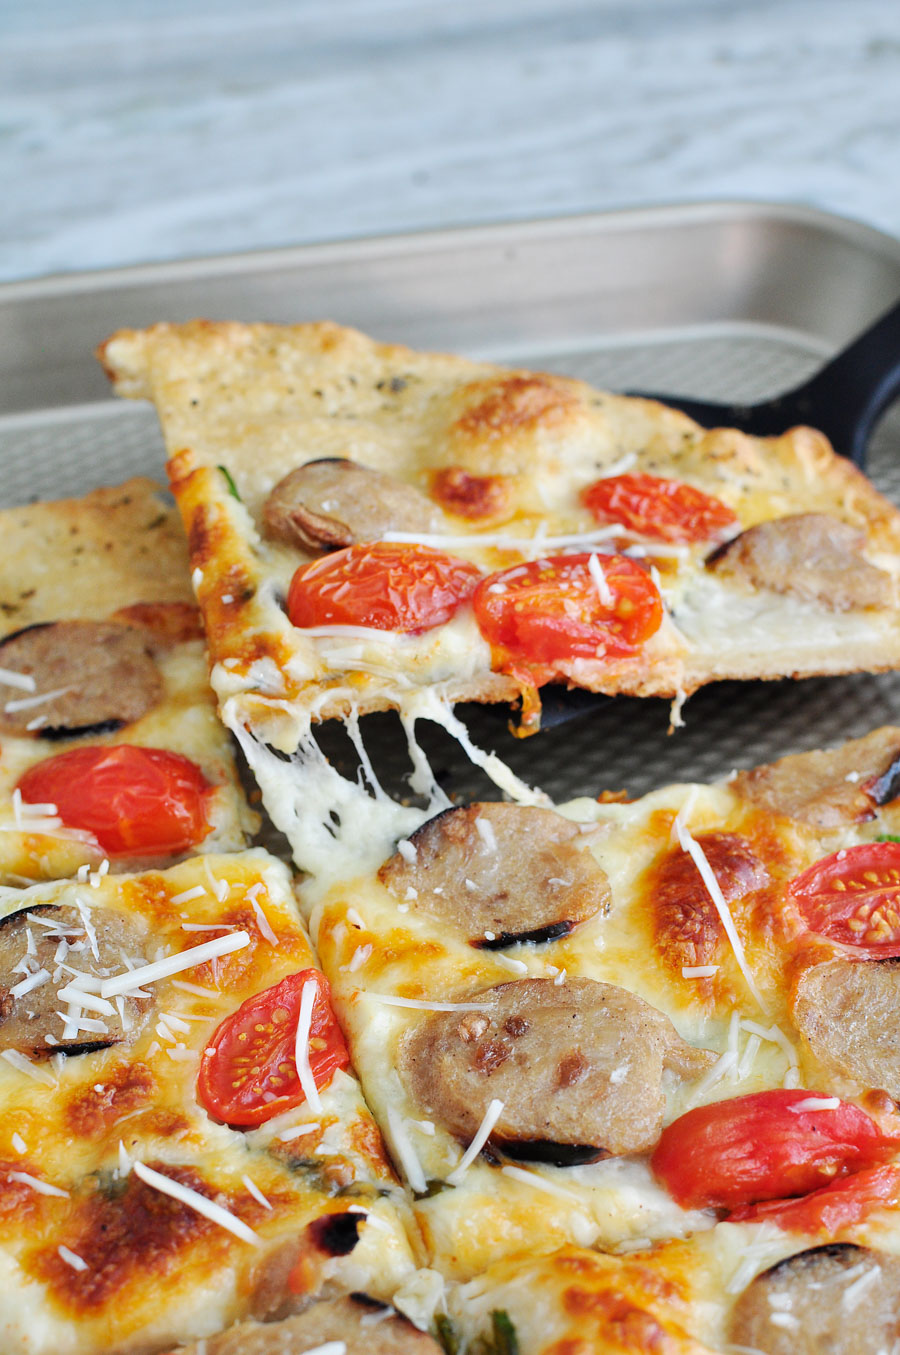 Rustic flatbread chicken sausage pizza recipe with spinach, alfredo, tomatoes and mozzarella. Weight Watchers friendly!